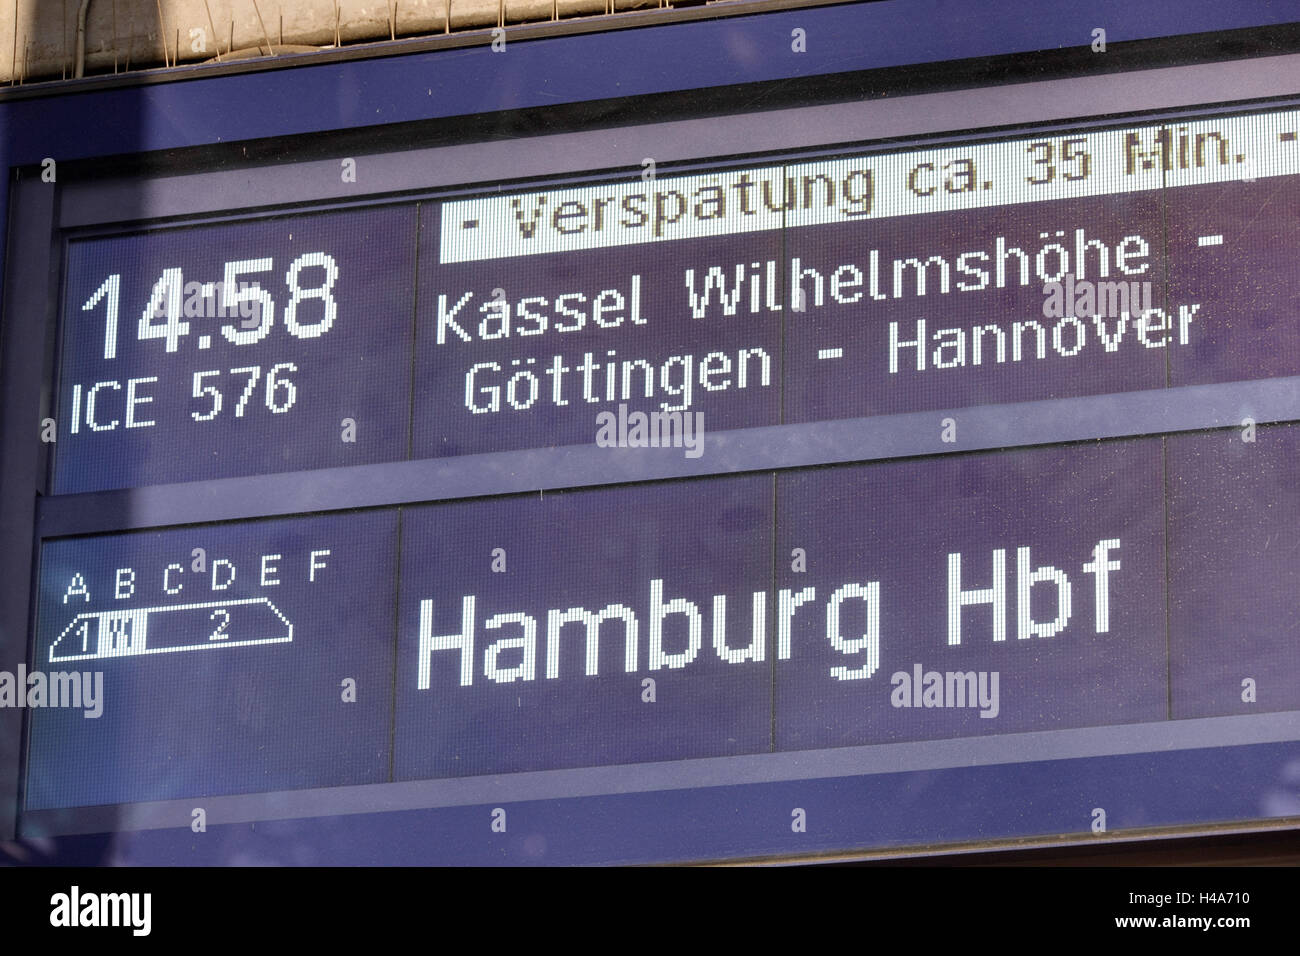 Railway station, destination board, delay, - Stock Image